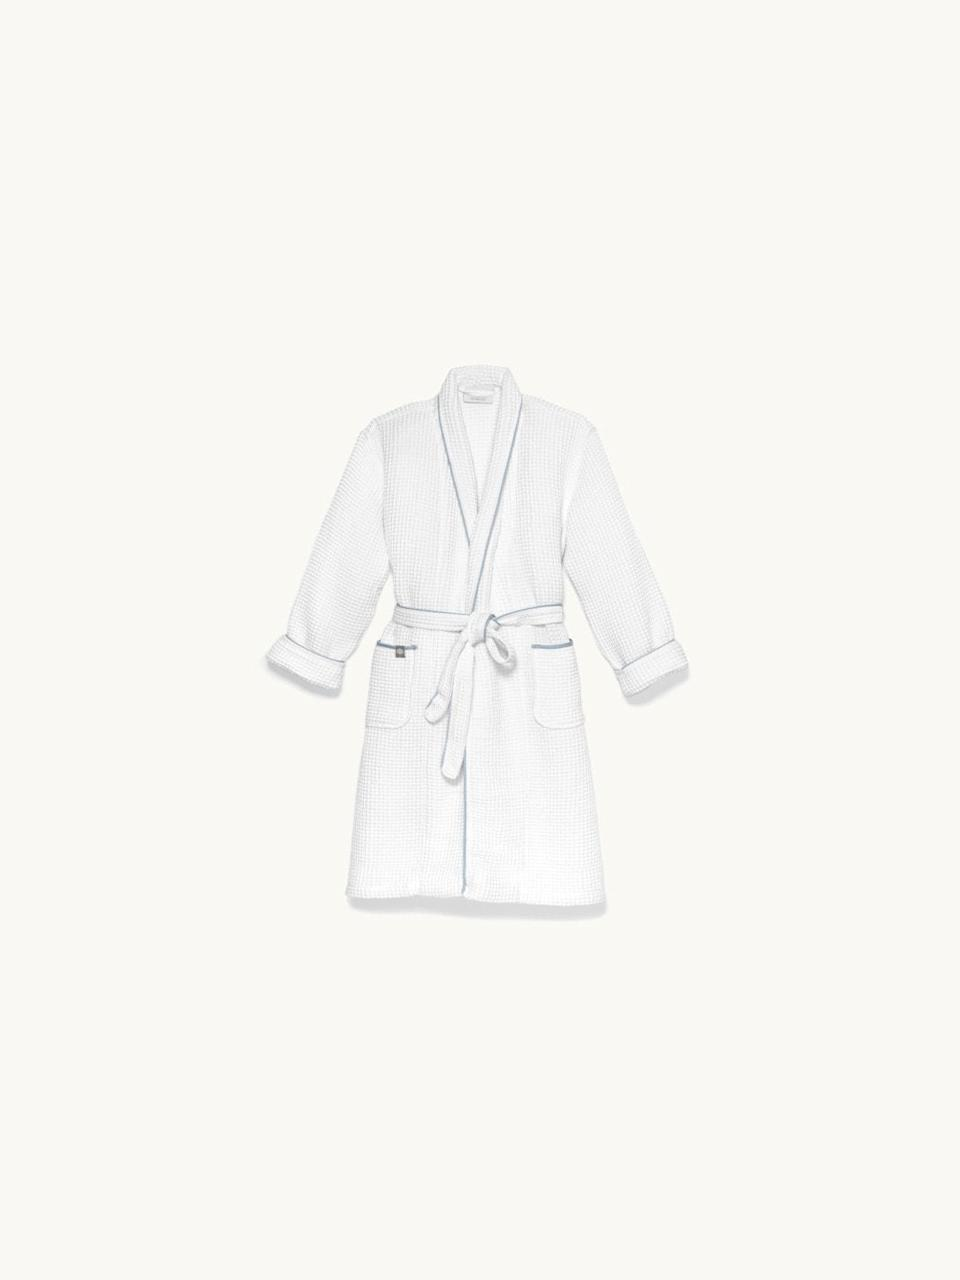 """<h3><a href=""""https://www.bollandbranch.com/products/womens-waffle-robe"""" rel=""""nofollow noopener"""" target=""""_blank"""" data-ylk=""""slk:Boll & Branch Waffle Robe"""" class=""""link rapid-noclick-resp"""">Boll & Branch Waffle Robe</a></h3><br>Described as """"plush"""" and """"super-springy,"""" this waffle-weave robe is crafted from super absorbent materials that are perfect for swaddling any bod post-shower (or bubble bath).<br><br>One reviewer calls it, """"Superb in every way- yummy soft texture washes beautifully, sized properly. I'm lovin' it!""""<br><br><strong>Boll And Branch</strong> Waffle Robe, $, available at <a href=""""https://go.skimresources.com/?id=30283X879131&url=https%3A%2F%2Fwww.bollandbranch.com%2Fproducts%2Fwomens-waffle-robe"""" rel=""""nofollow noopener"""" target=""""_blank"""" data-ylk=""""slk:Boll And Branch"""" class=""""link rapid-noclick-resp"""">Boll And Branch</a>"""